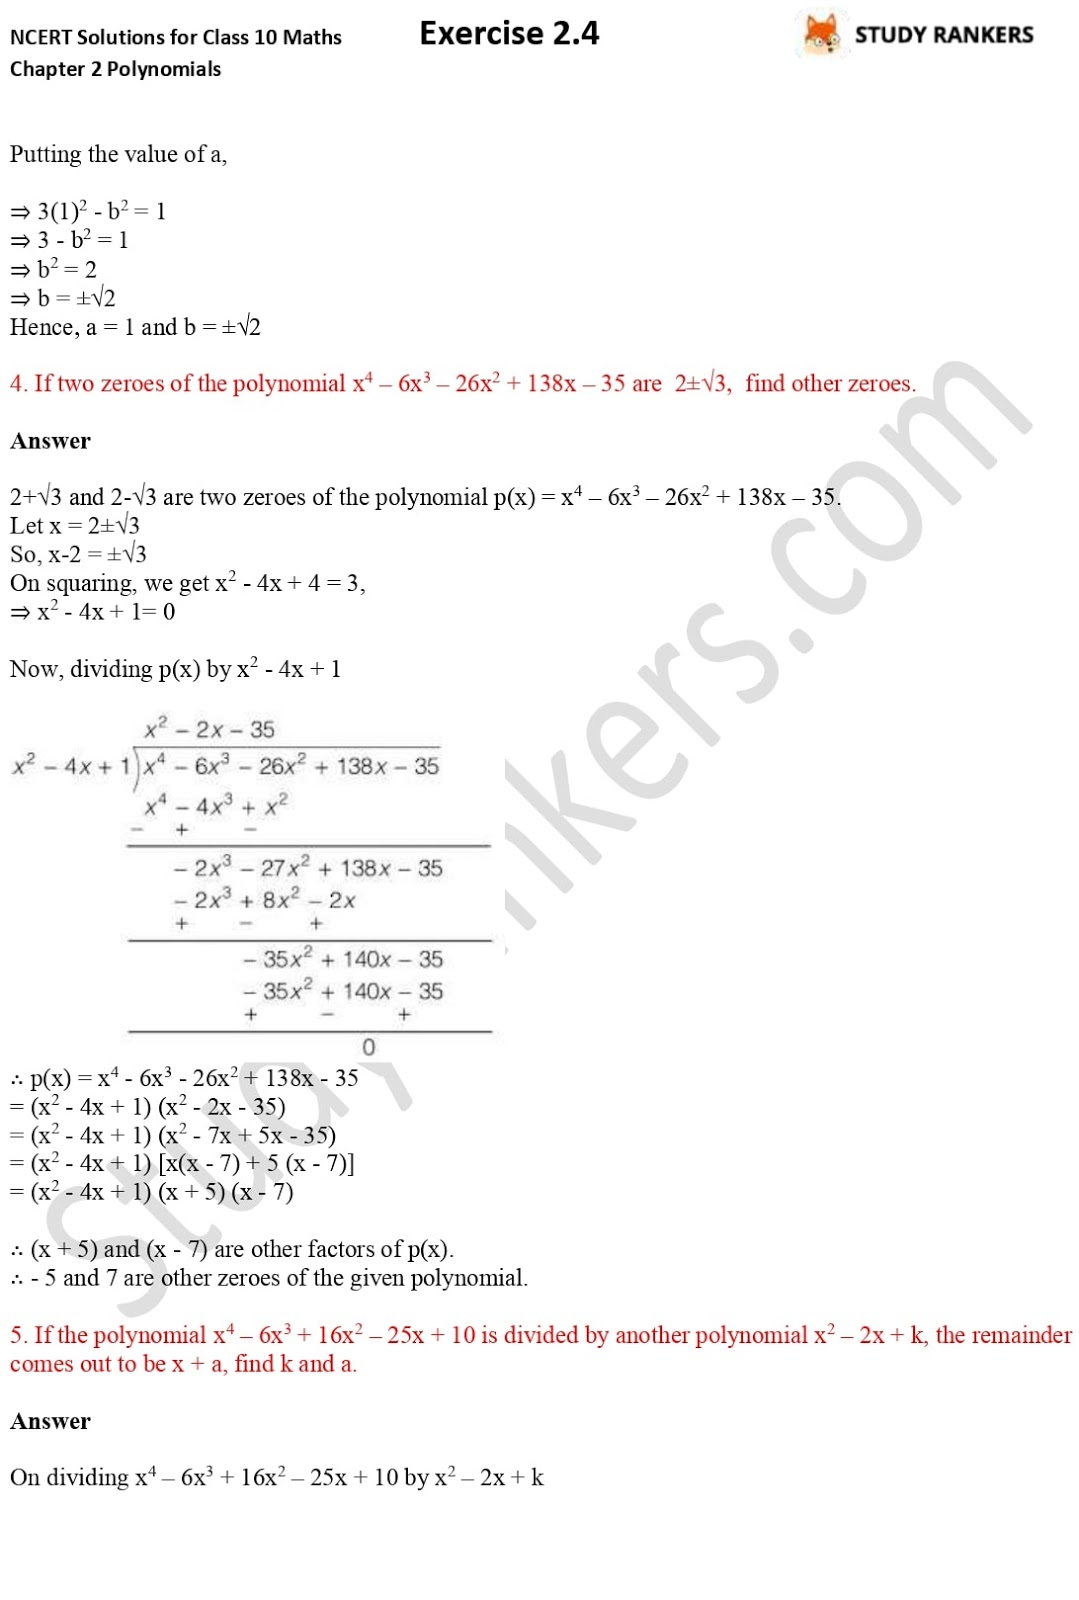 NCERT Solutions for Class 10 Maths Chapter 2 Polynomials Exercise 2.4 3